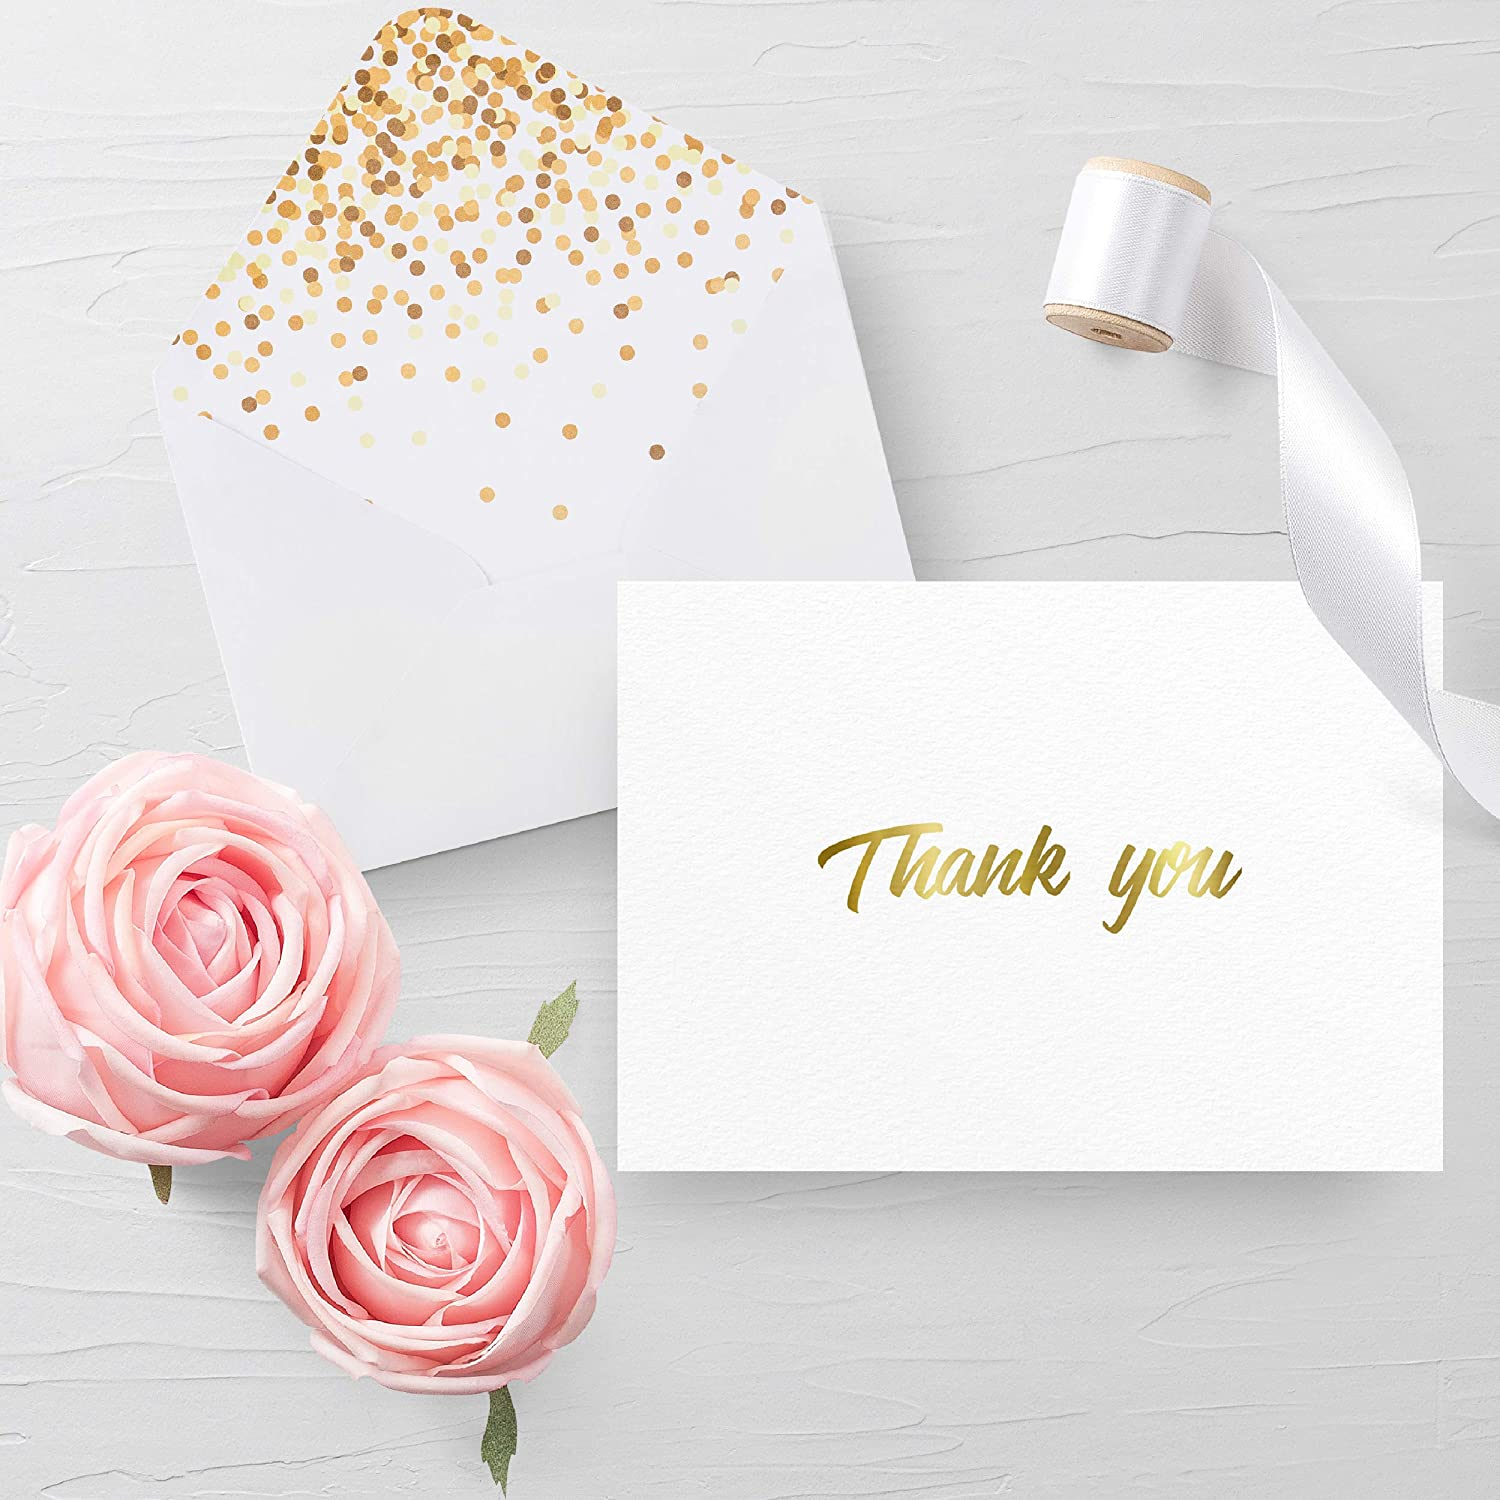 100 thank you cards with envelopes thank you notes white gold 100 thank you cards with envelopes thank you notes white gold foil blank cards with izmirmasajfo